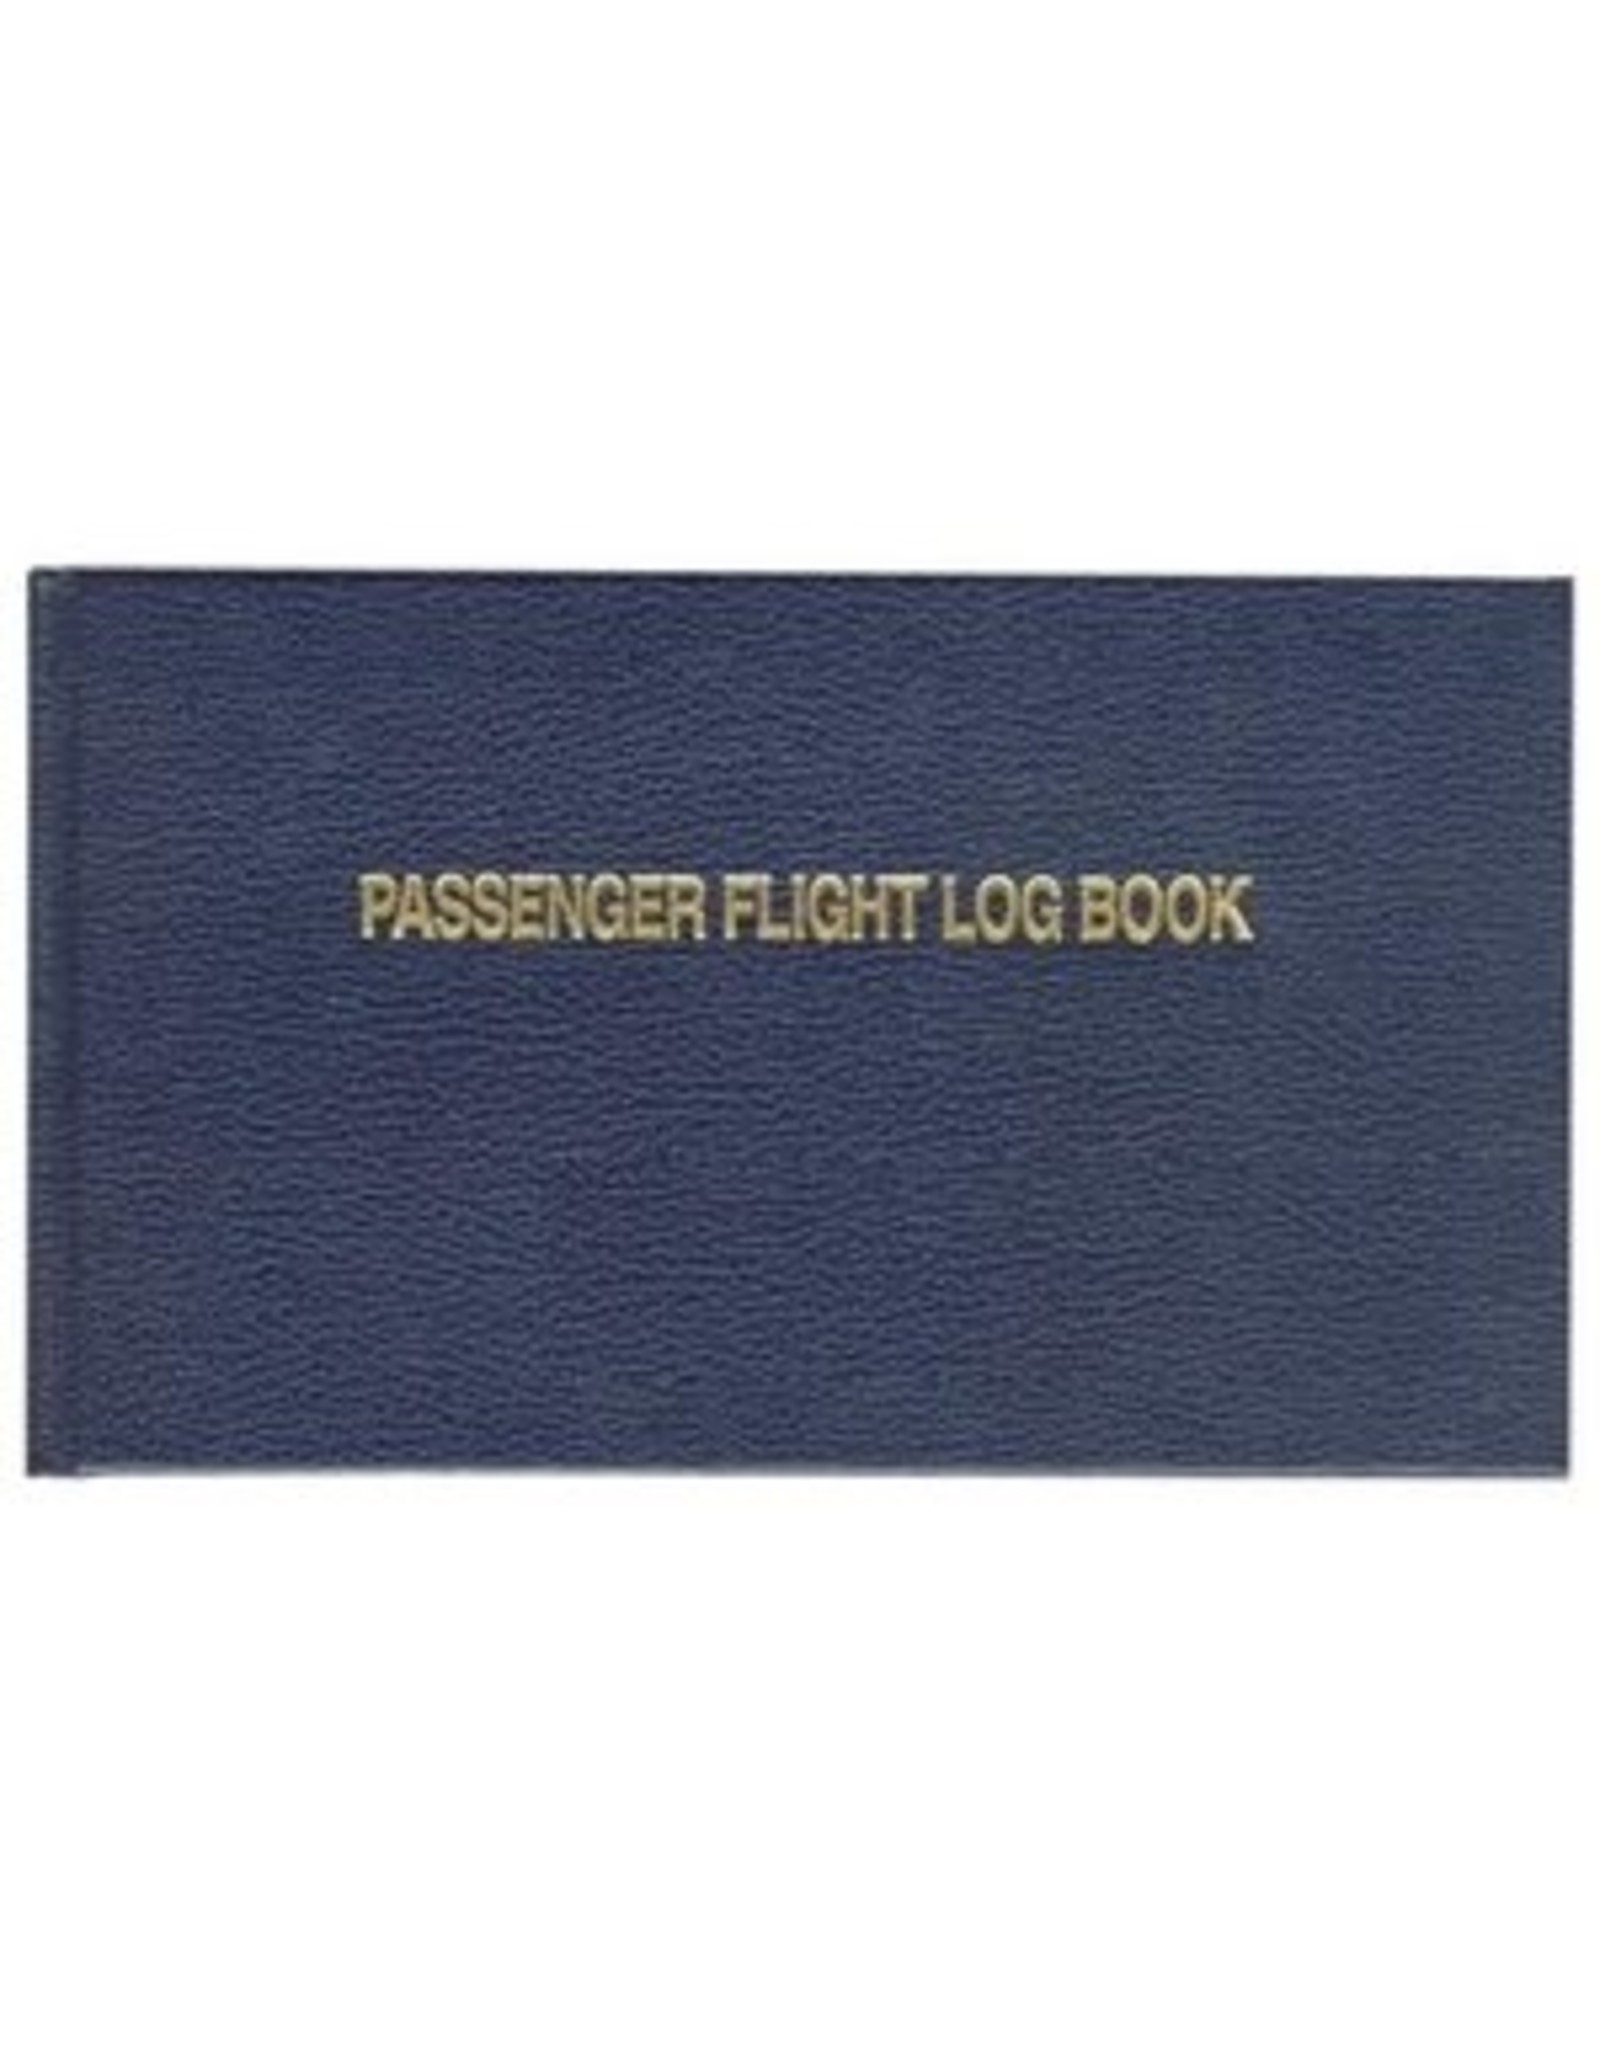 Passenger Flight Logbook - Navy Blue